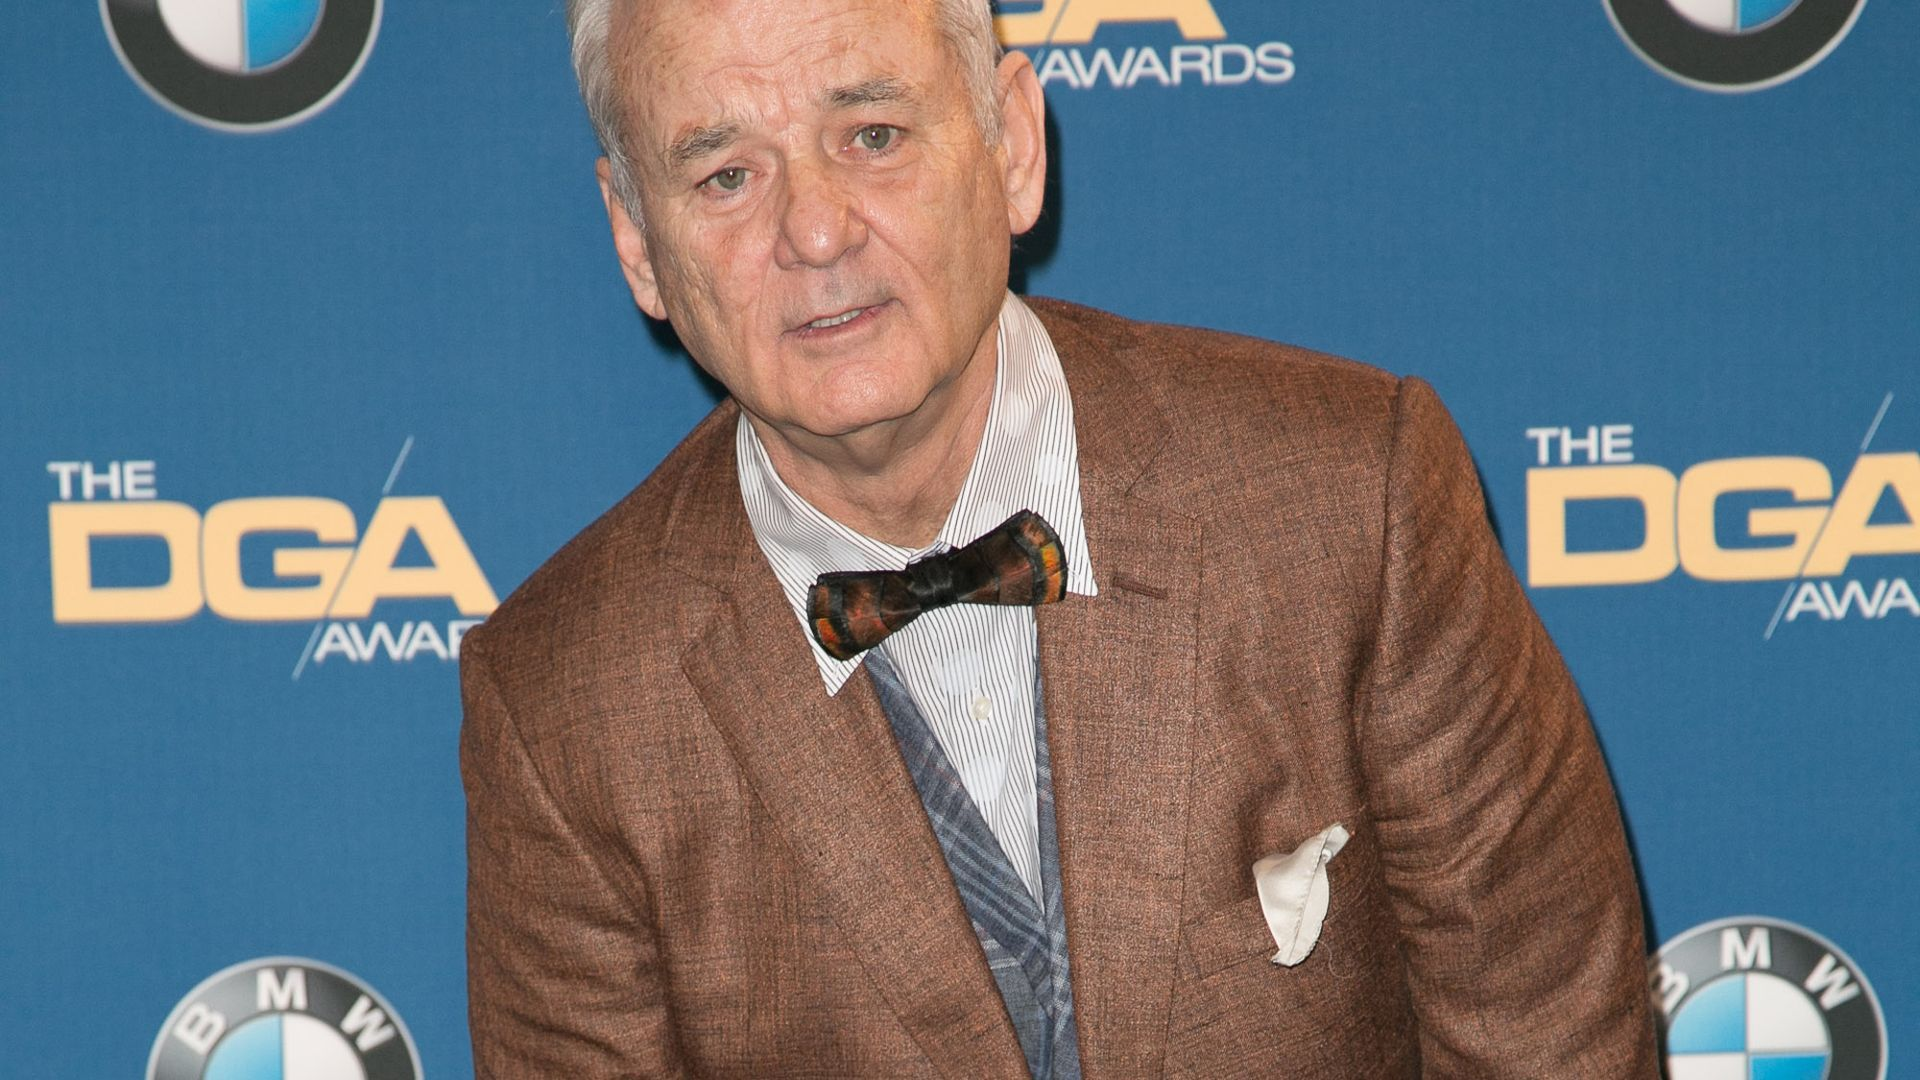 bill murray hd wallpaper - photo #25